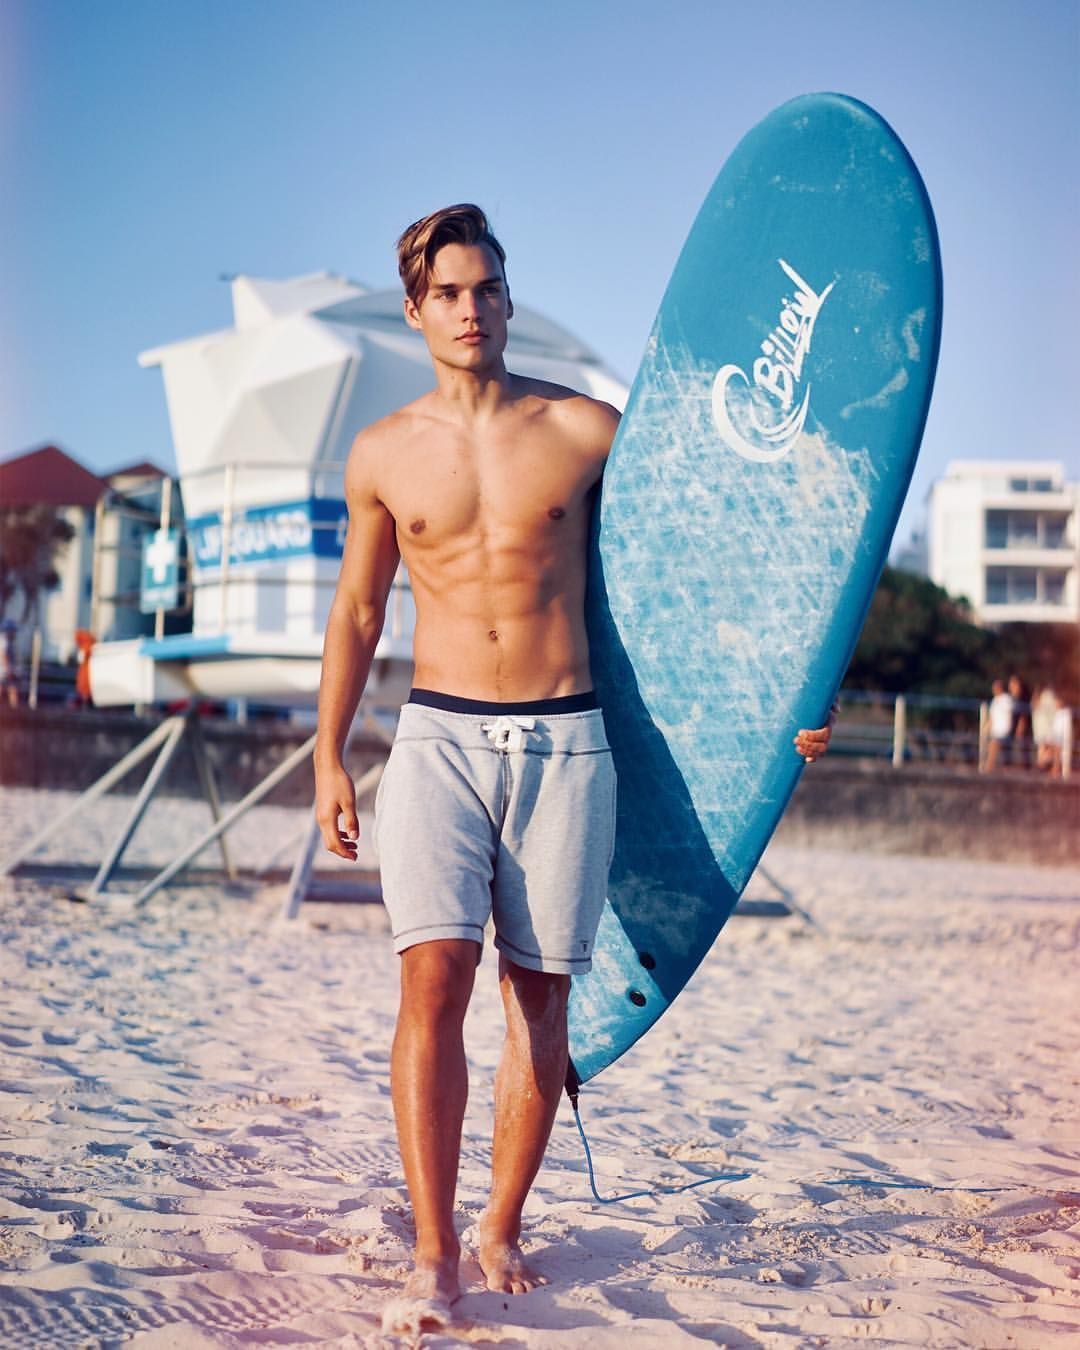 This gay pro surfer came out to his mates when a grocery clerk hit on him